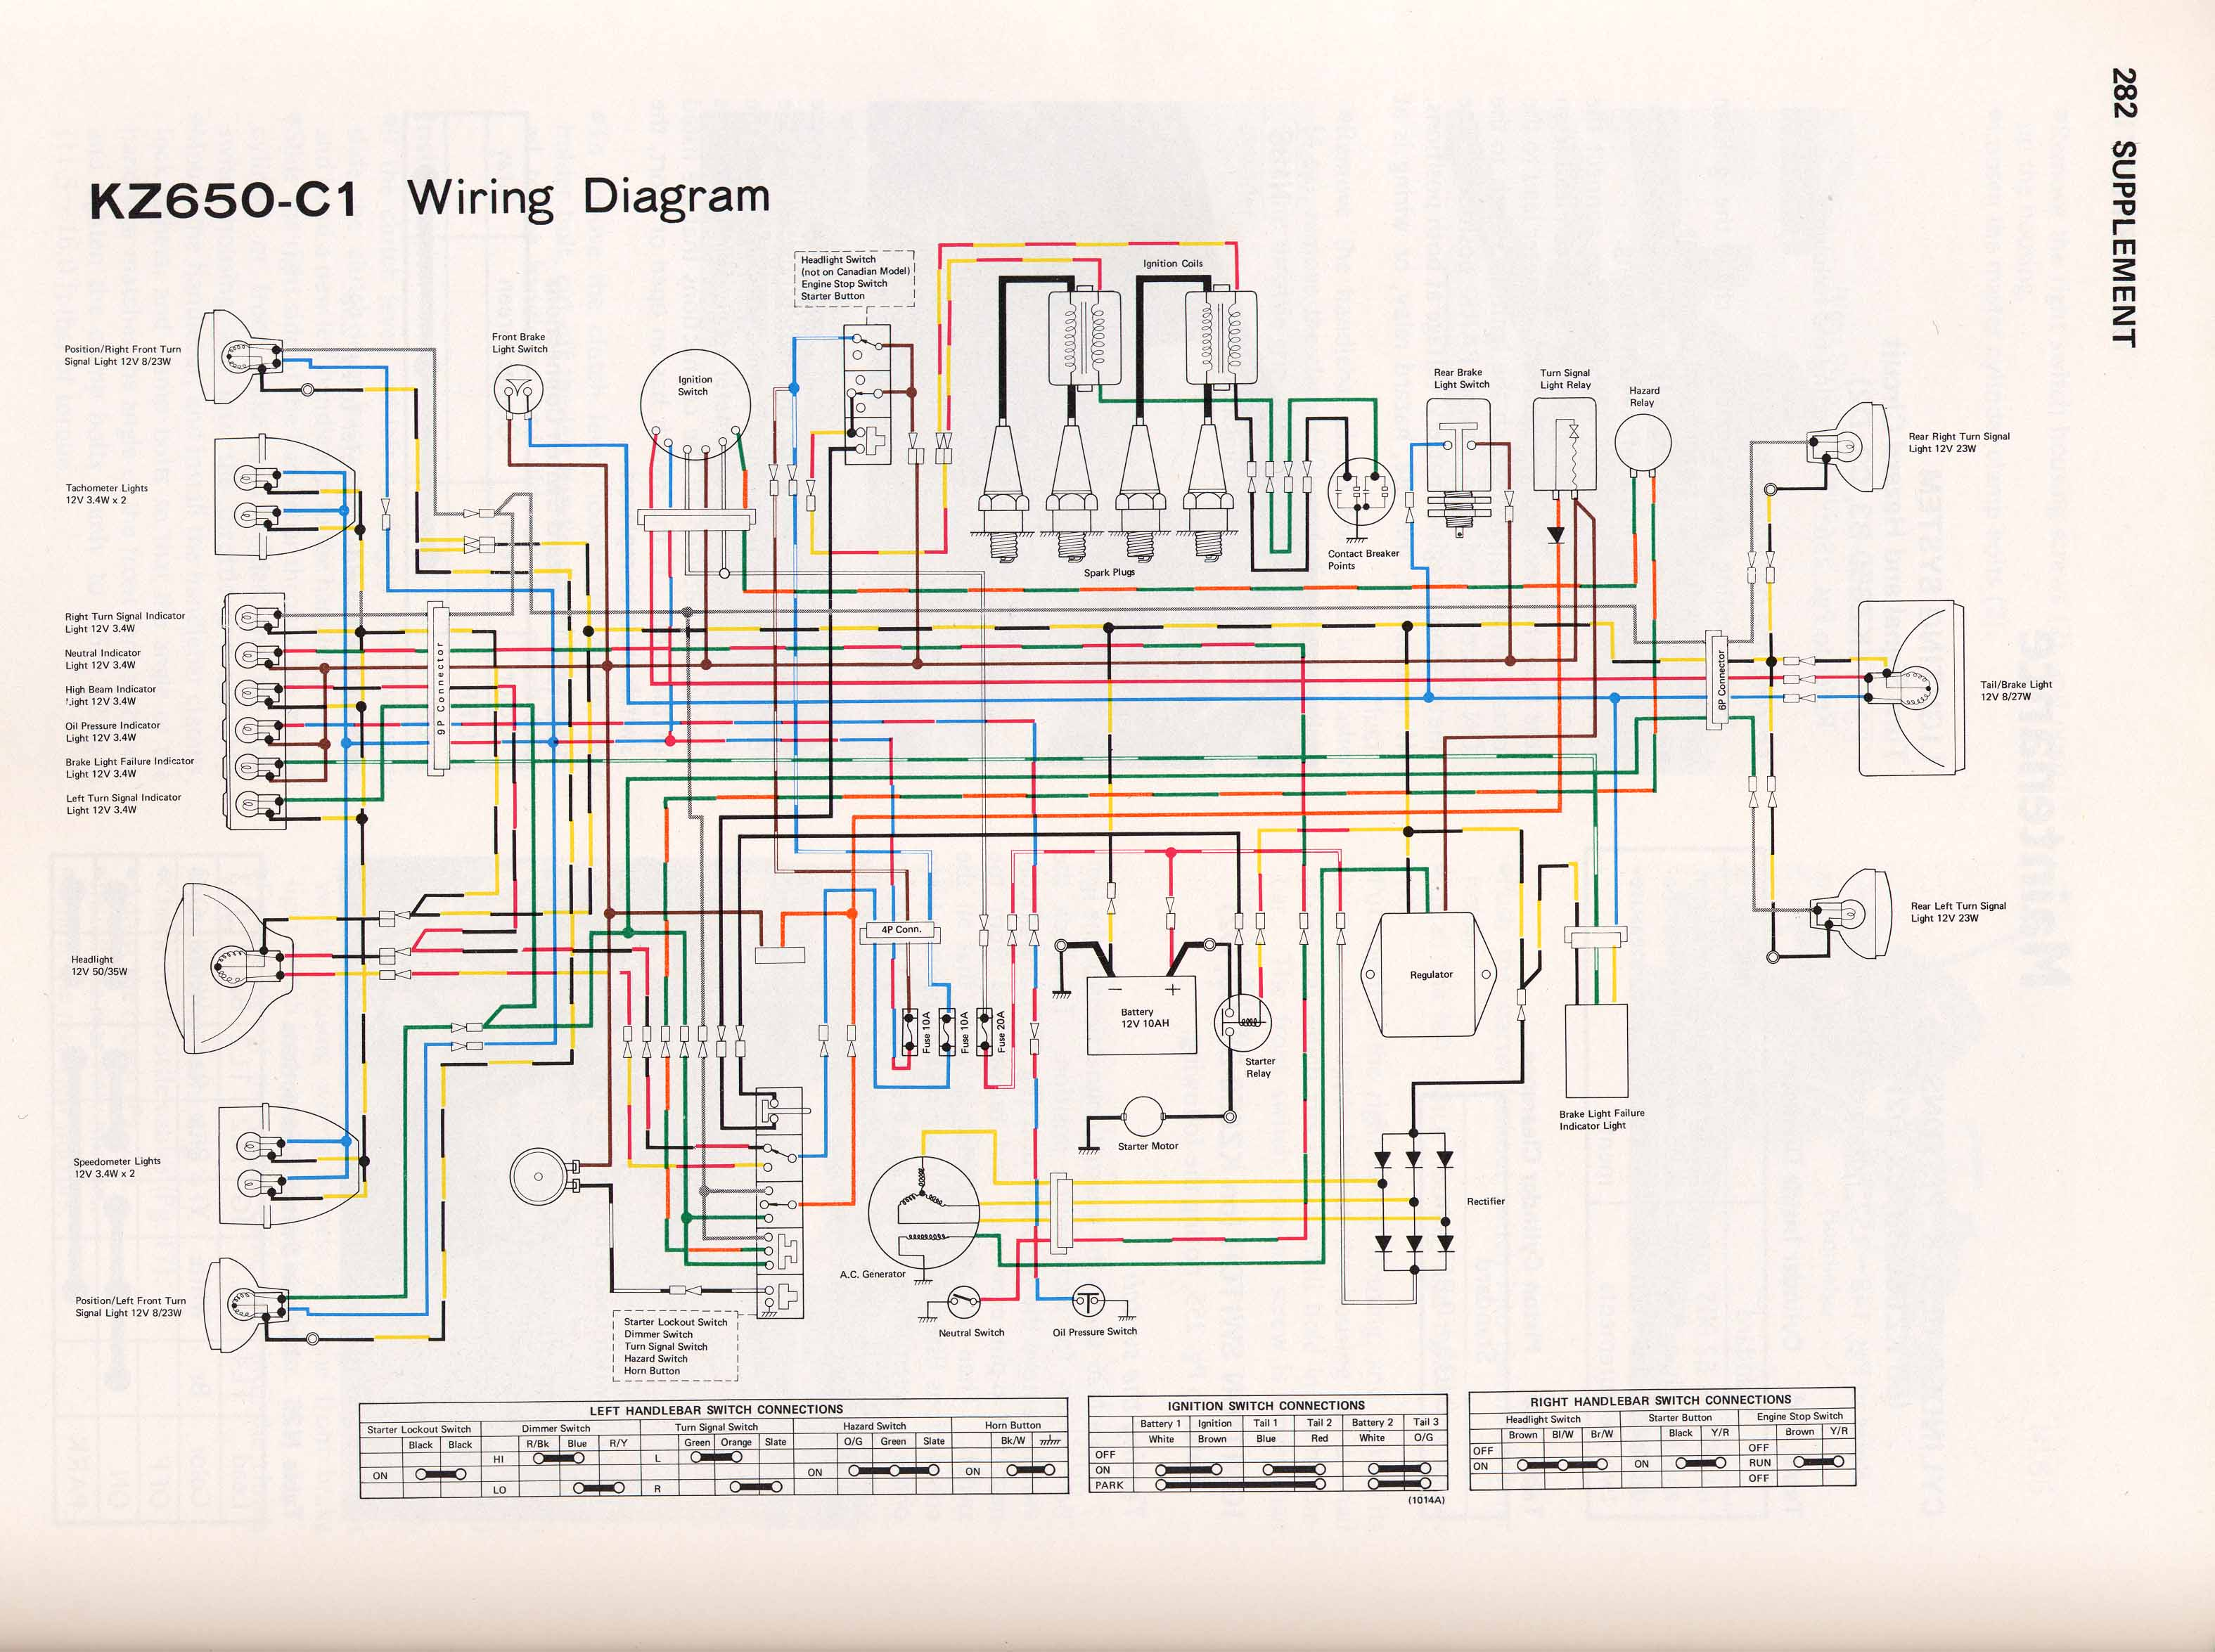 KZ650 C1 kawasaki kz650 wiring diagram vulcan 1500 wiring diagram \u2022 free 1981 kawasaki 440 ltd wiring diagram at bayanpartner.co